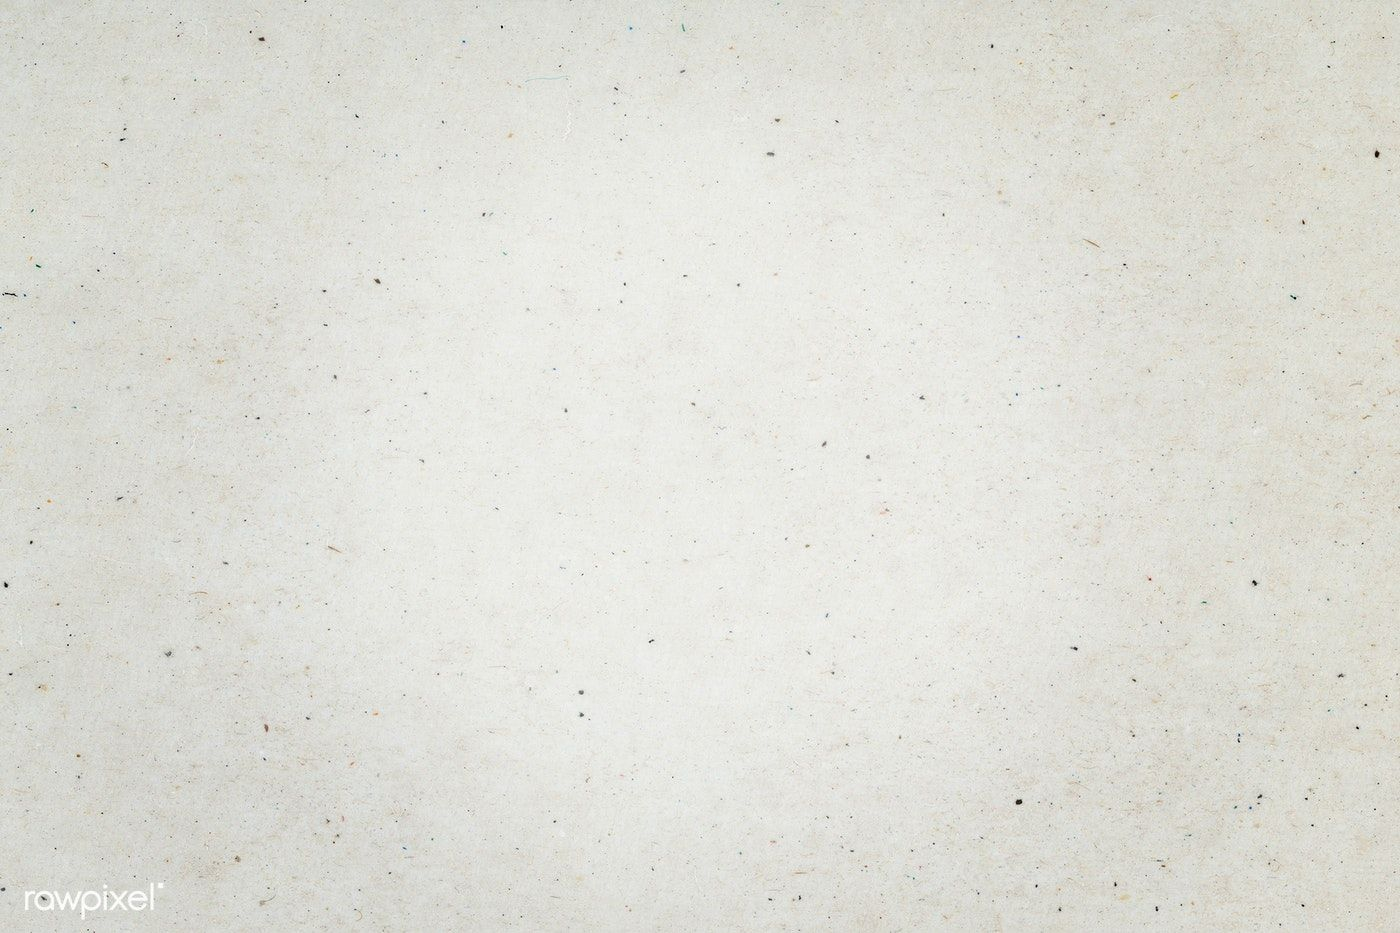 White Mulberry Paper Textured Background Free Image By Rawpixel Com White Paper Texture Background Paper Texture Background White Paper Texture